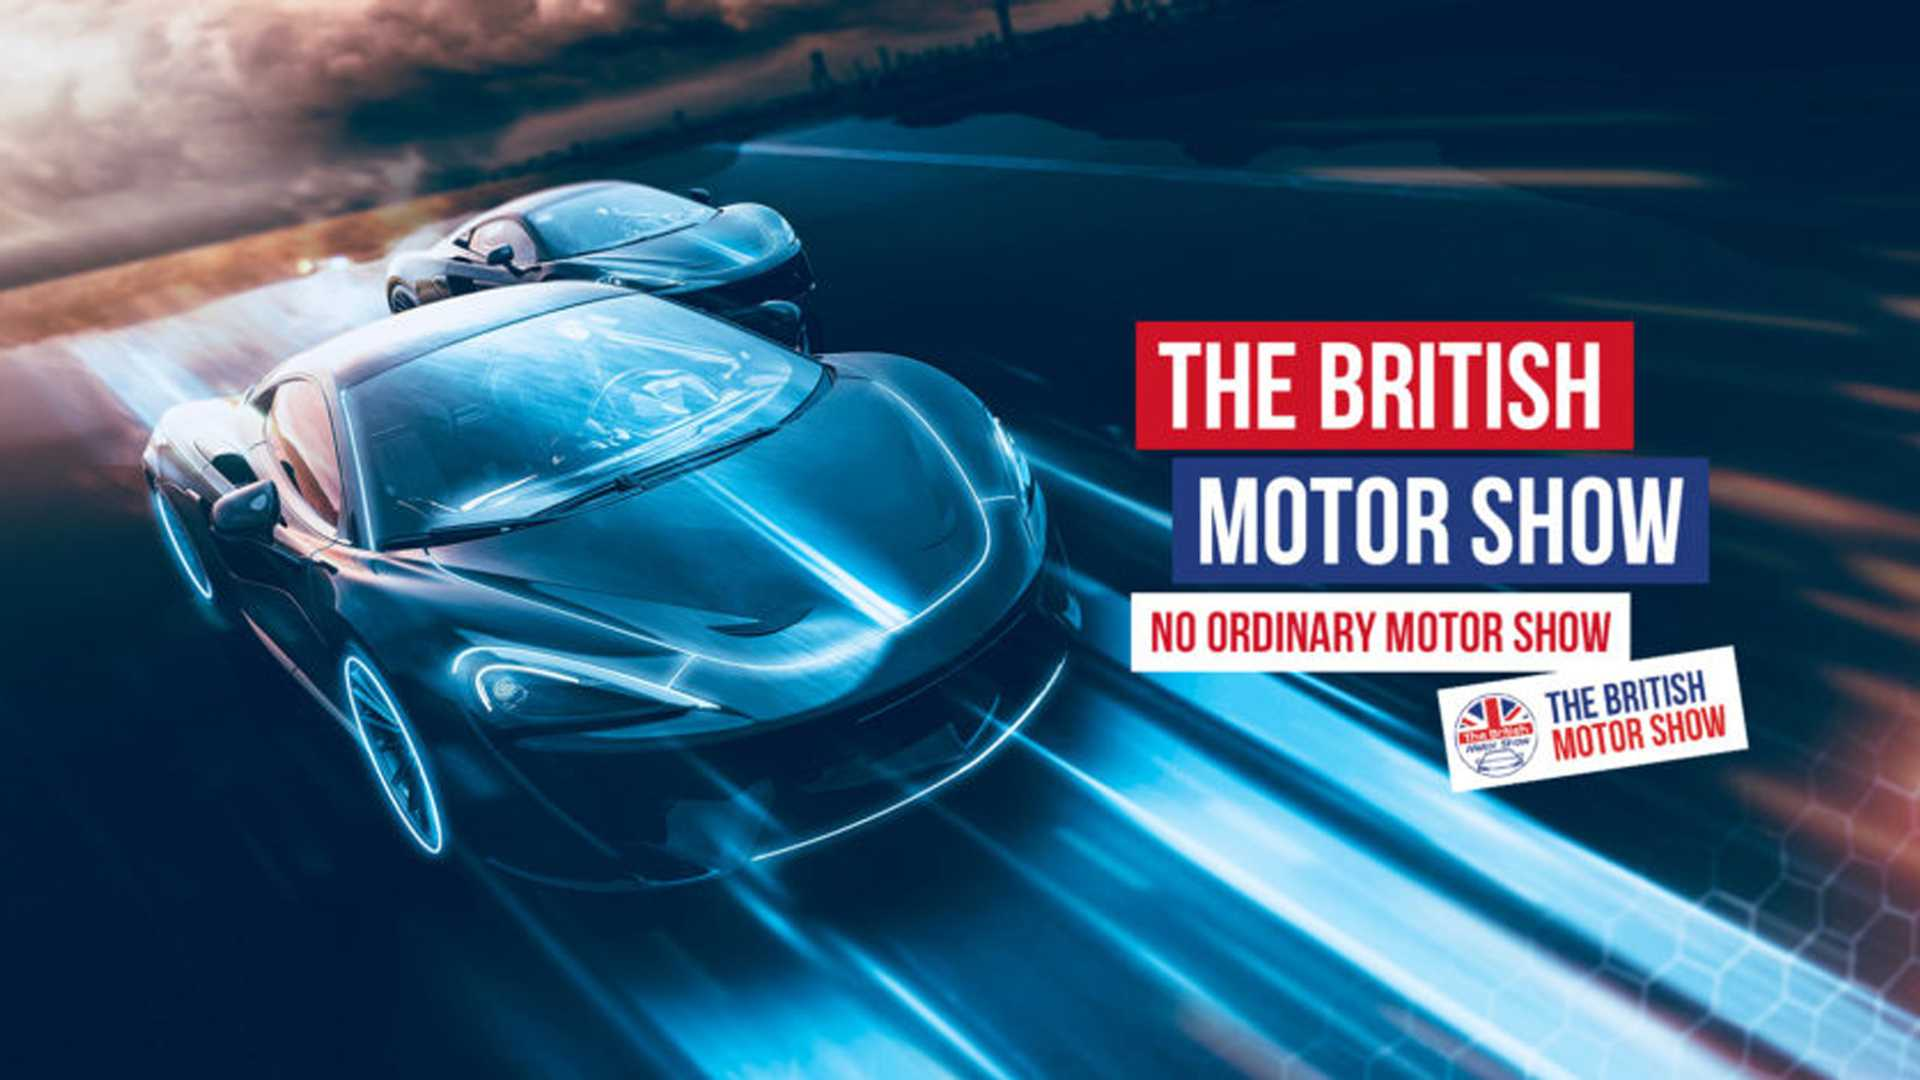 New-look British Motor Show to return in 2020